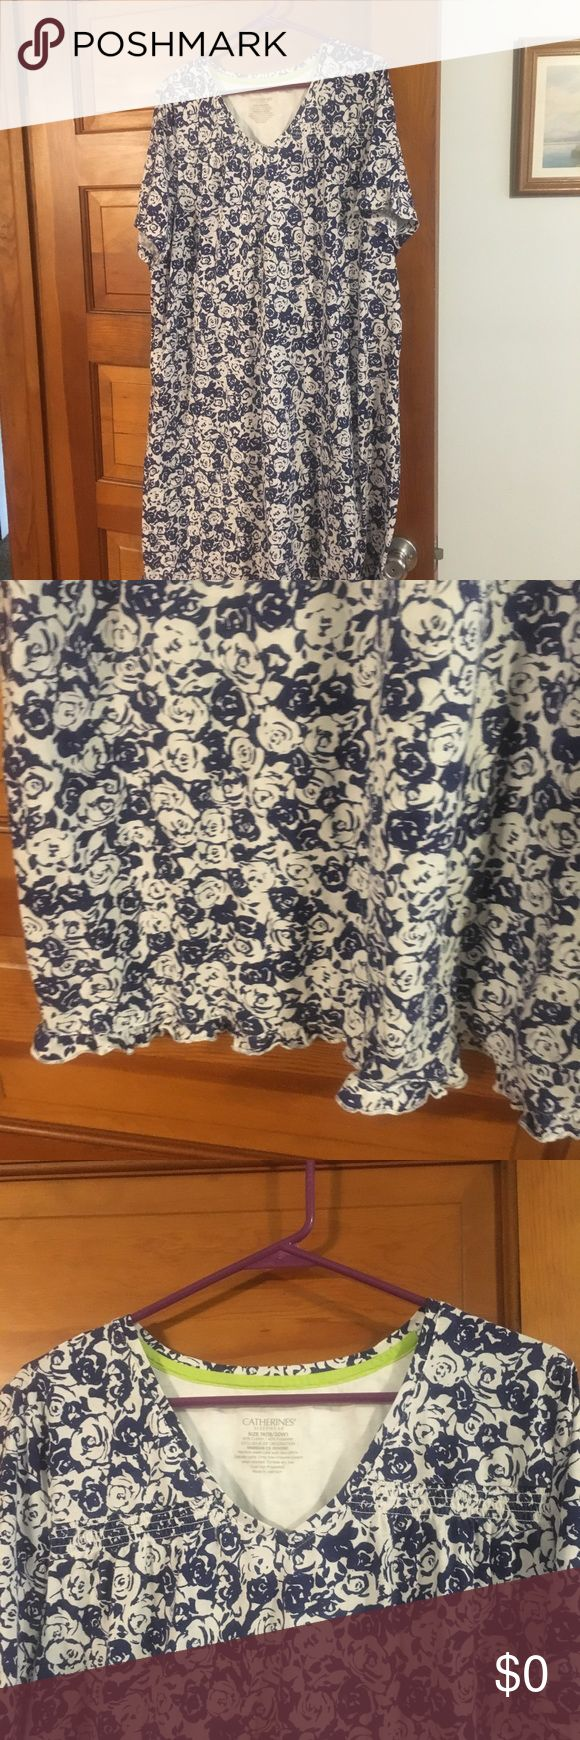 Free night gown This night gown  is free to the next person who buys from my plus section. It is pre-loved but has lots of wear left, with a tiny mark on it. But hey it's free if you are  the next person to purchase a plus size from me. Catherines Intimates & Sleepwear